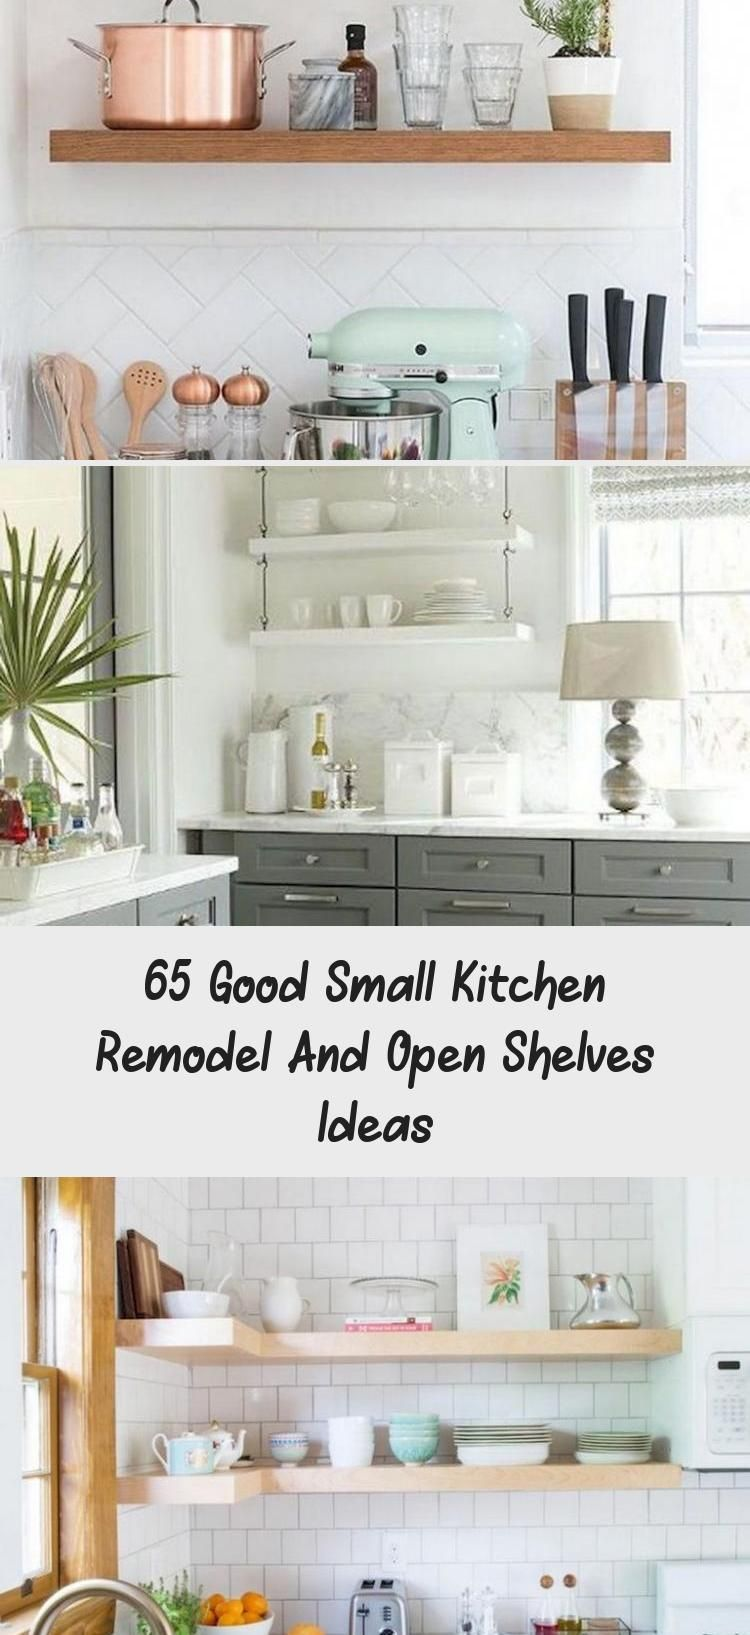 9 Good Small Kitchen Remodel and Open Shelves Ideas kitchens ...